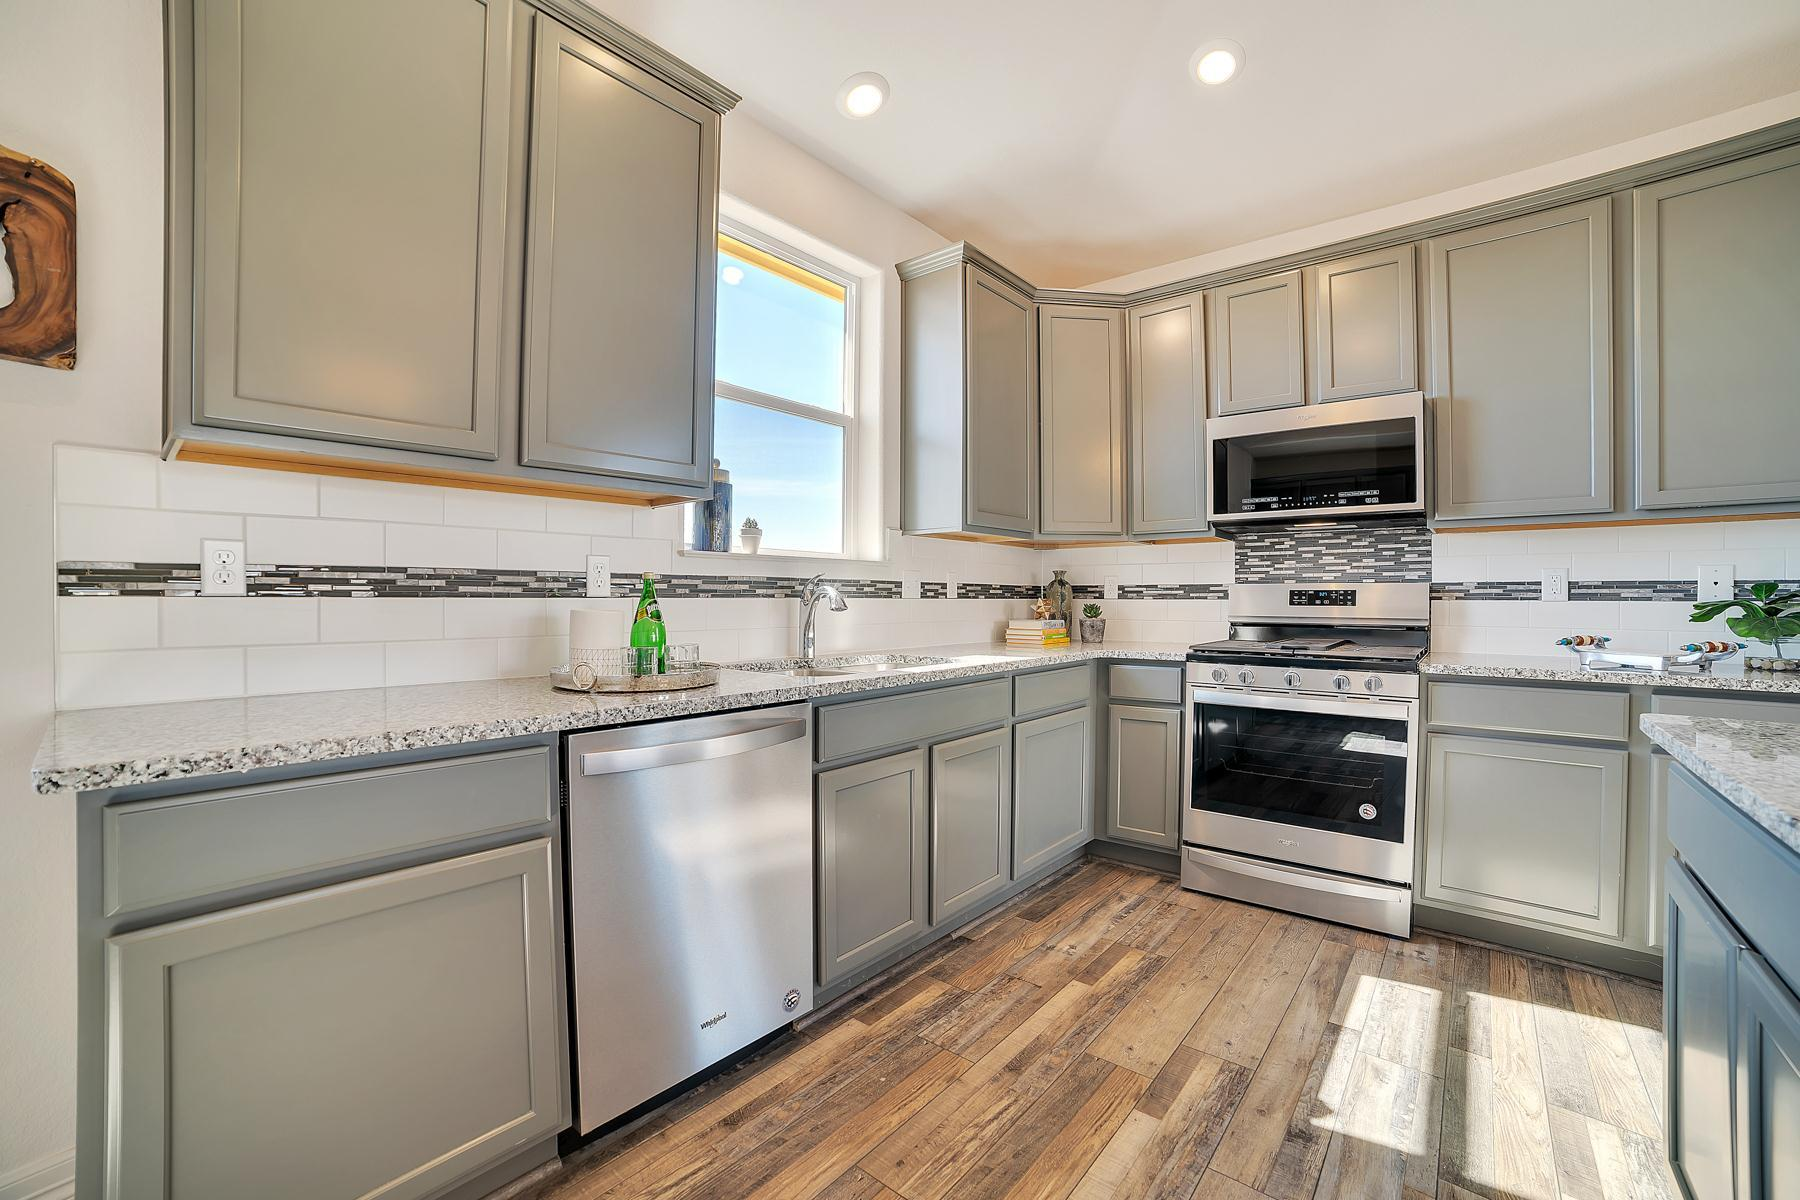 Kitchen featured in the Sage at Blackstone Ranch By Pauls Homes in Denver, CO